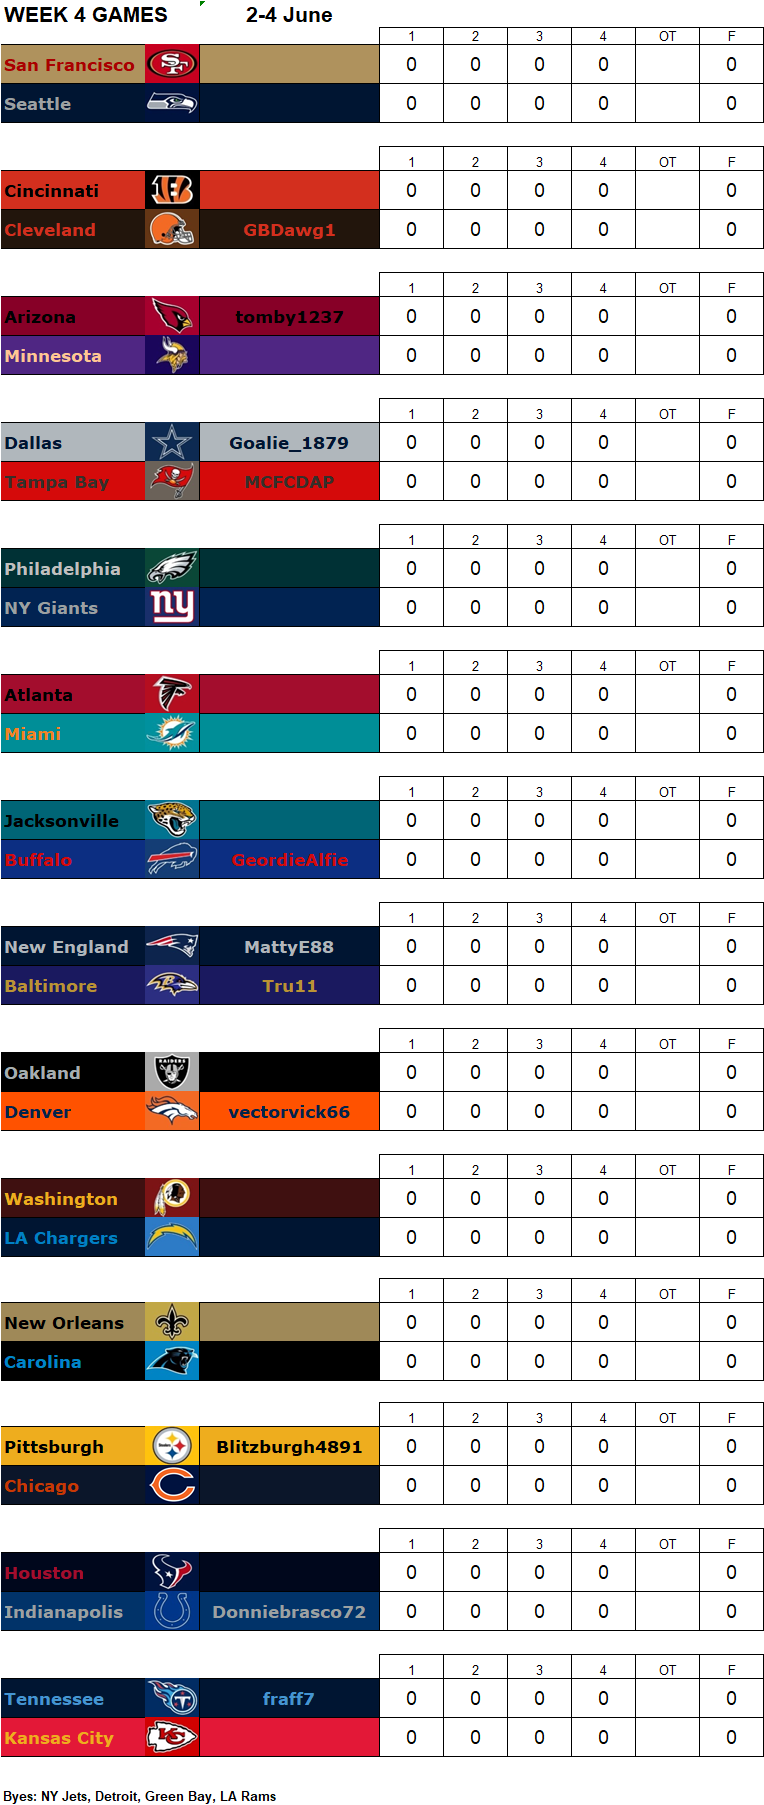 Week 4 Matchups, 2-4 June W4g15